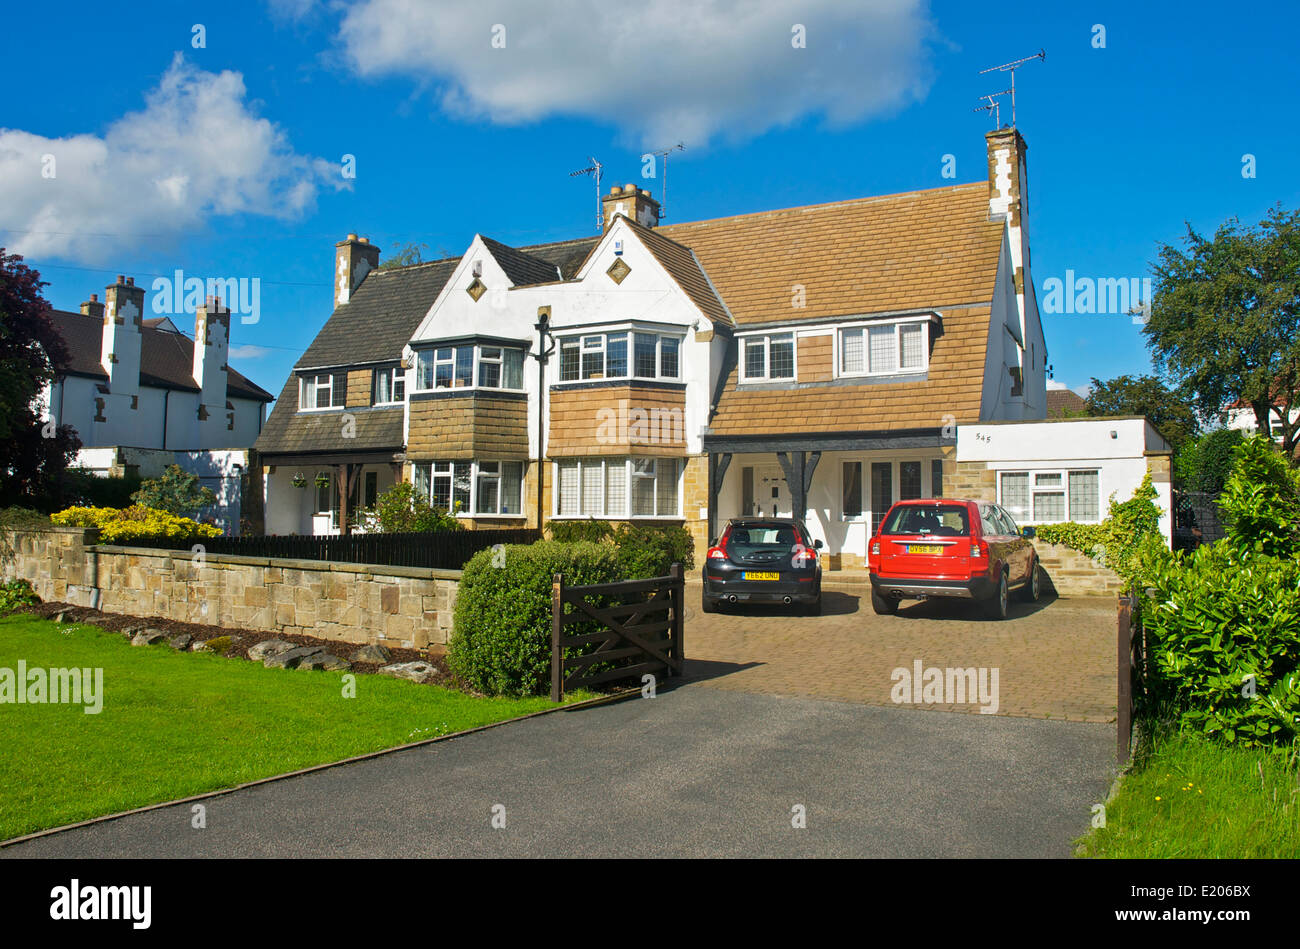 Typical suburban semi-detached houses, in Adel, near Leeds, West Yorkshire, England UK - Stock Image